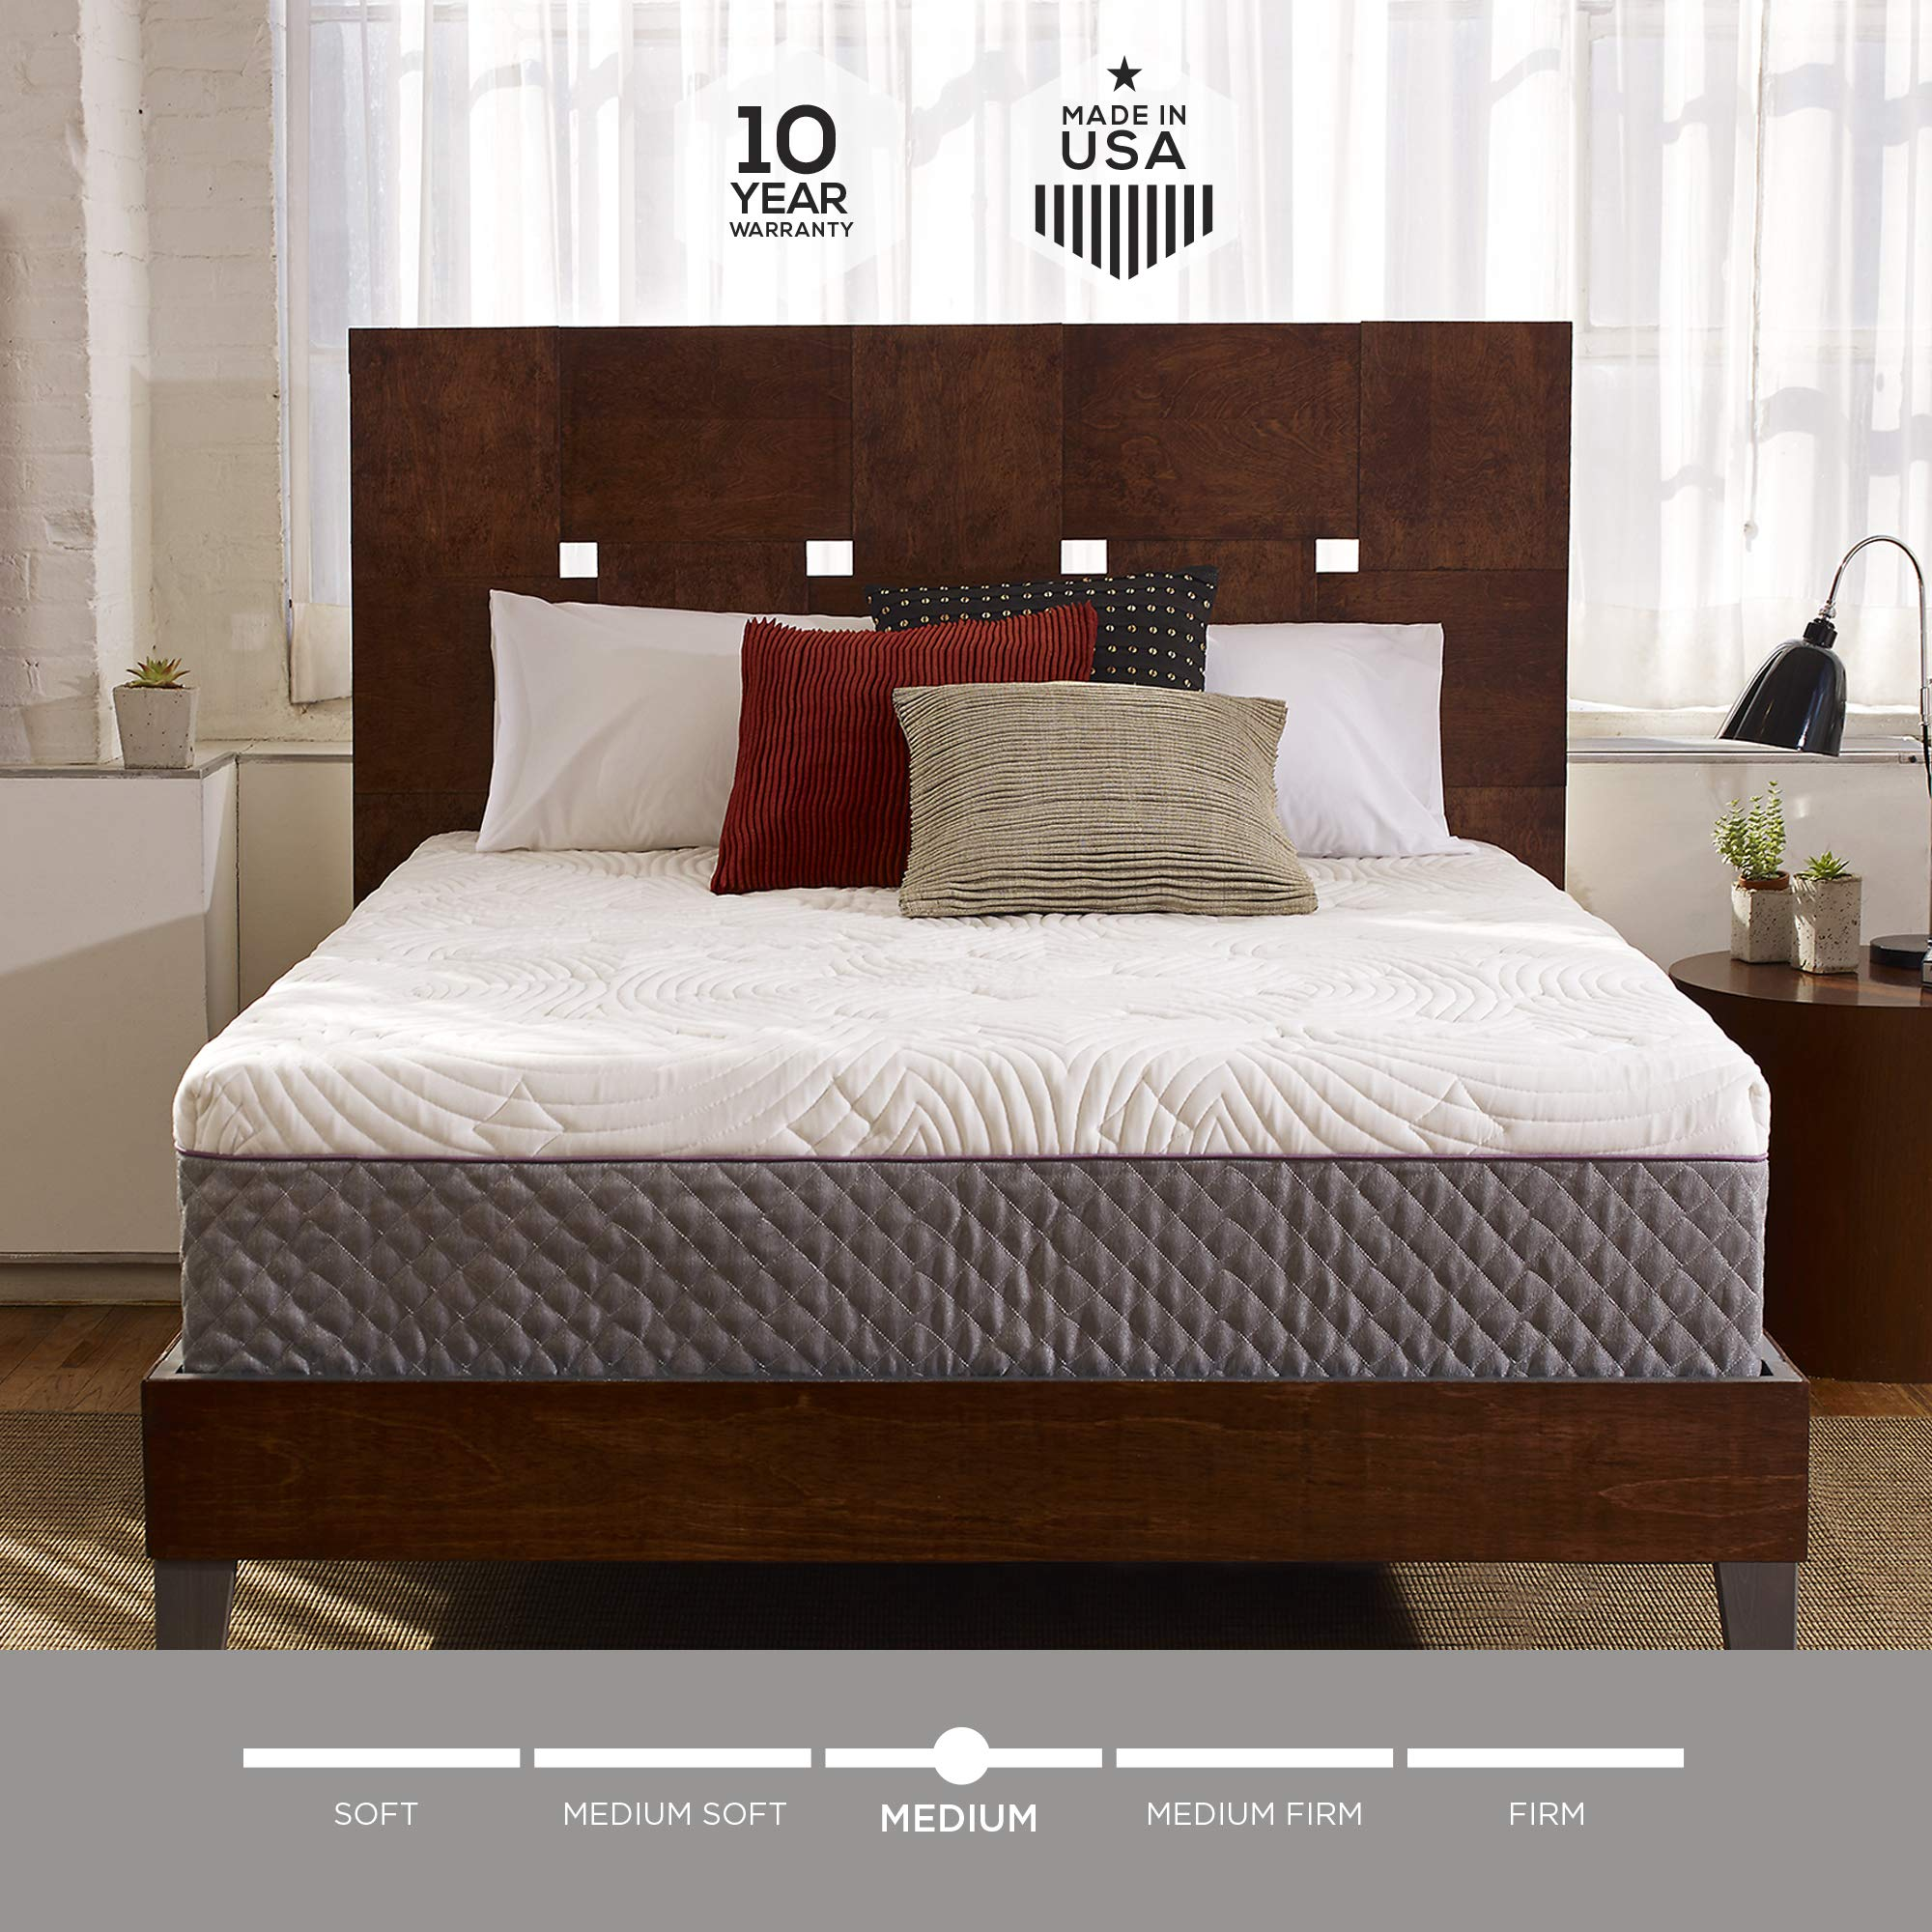 Sleep Innovations Shiloh 12-inch Memory Foam Mattress, Bed in a Box, Quilted Cover, Made in The USA, 10-Year Warranty - King Size by Sleep Innovations